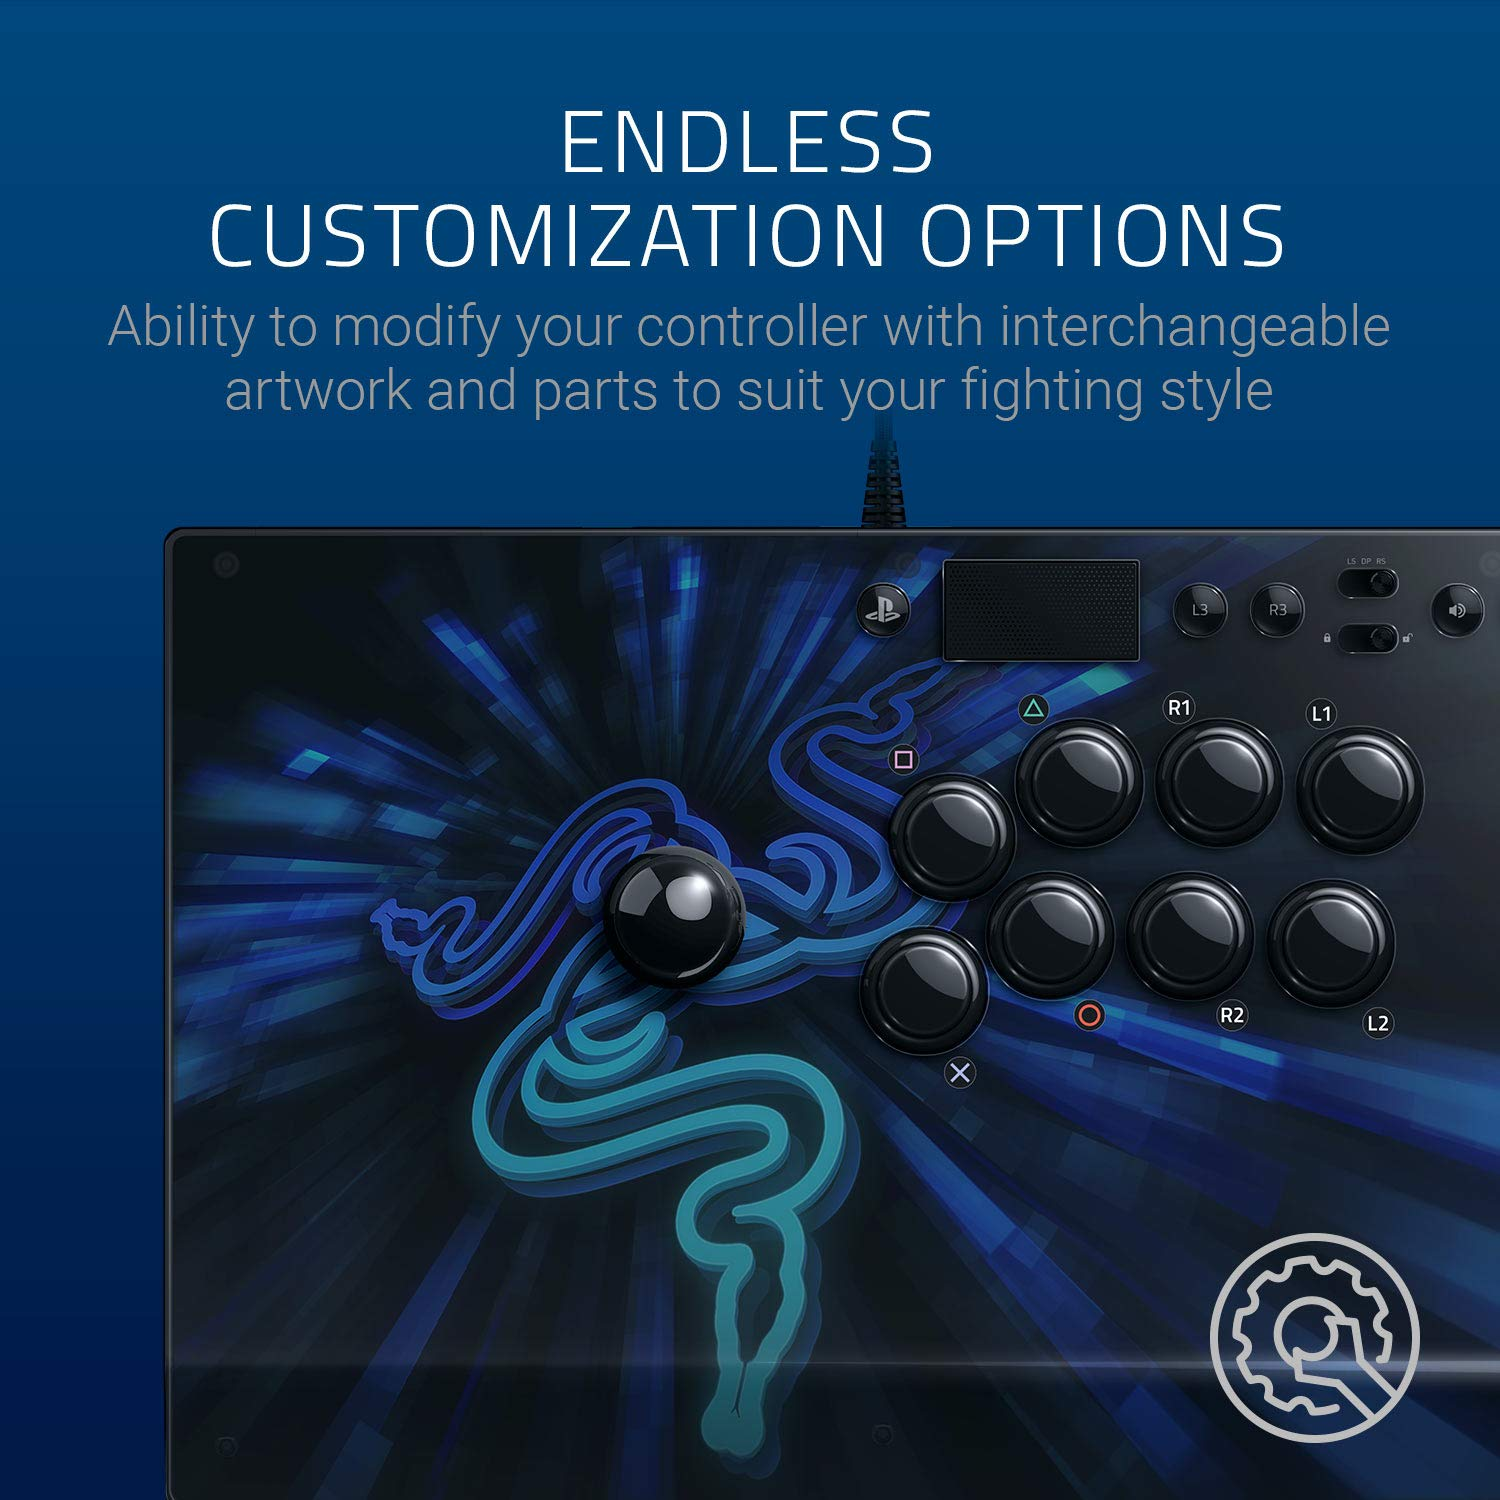 Razer Panthera Evo: Fully Mod-Capable - Sanwa Joystick and Buttons -  Internal Storage Compartment - Tournament Arcade Stick for PS4